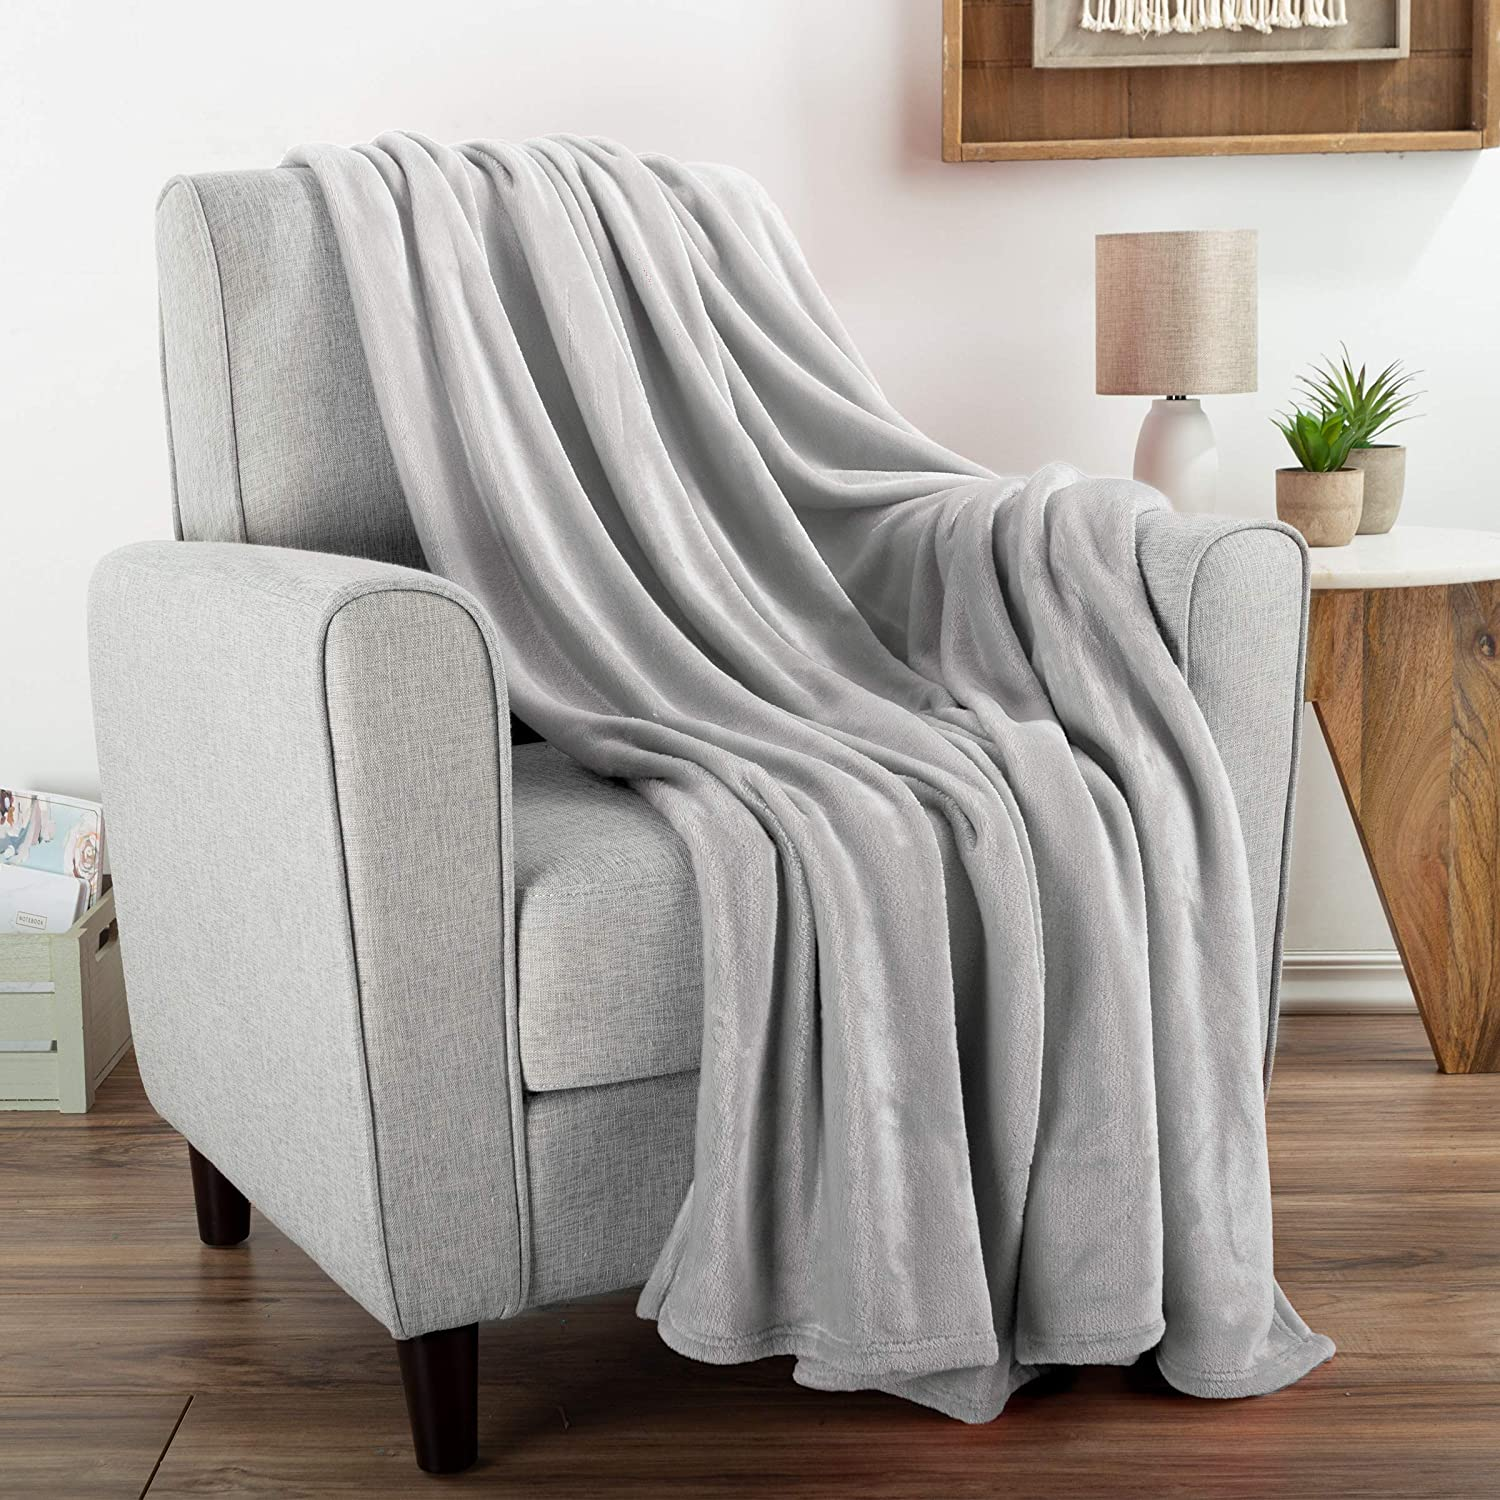 "Flannel Fleece Throw Blanket- For Couch, Home Décor, Bed, Sofa & Chair- Oversized 60"" x 70""- Lightweight, Soft & Plush Microfiber in Desert Tan by Bedford Home, Dawn Gray"